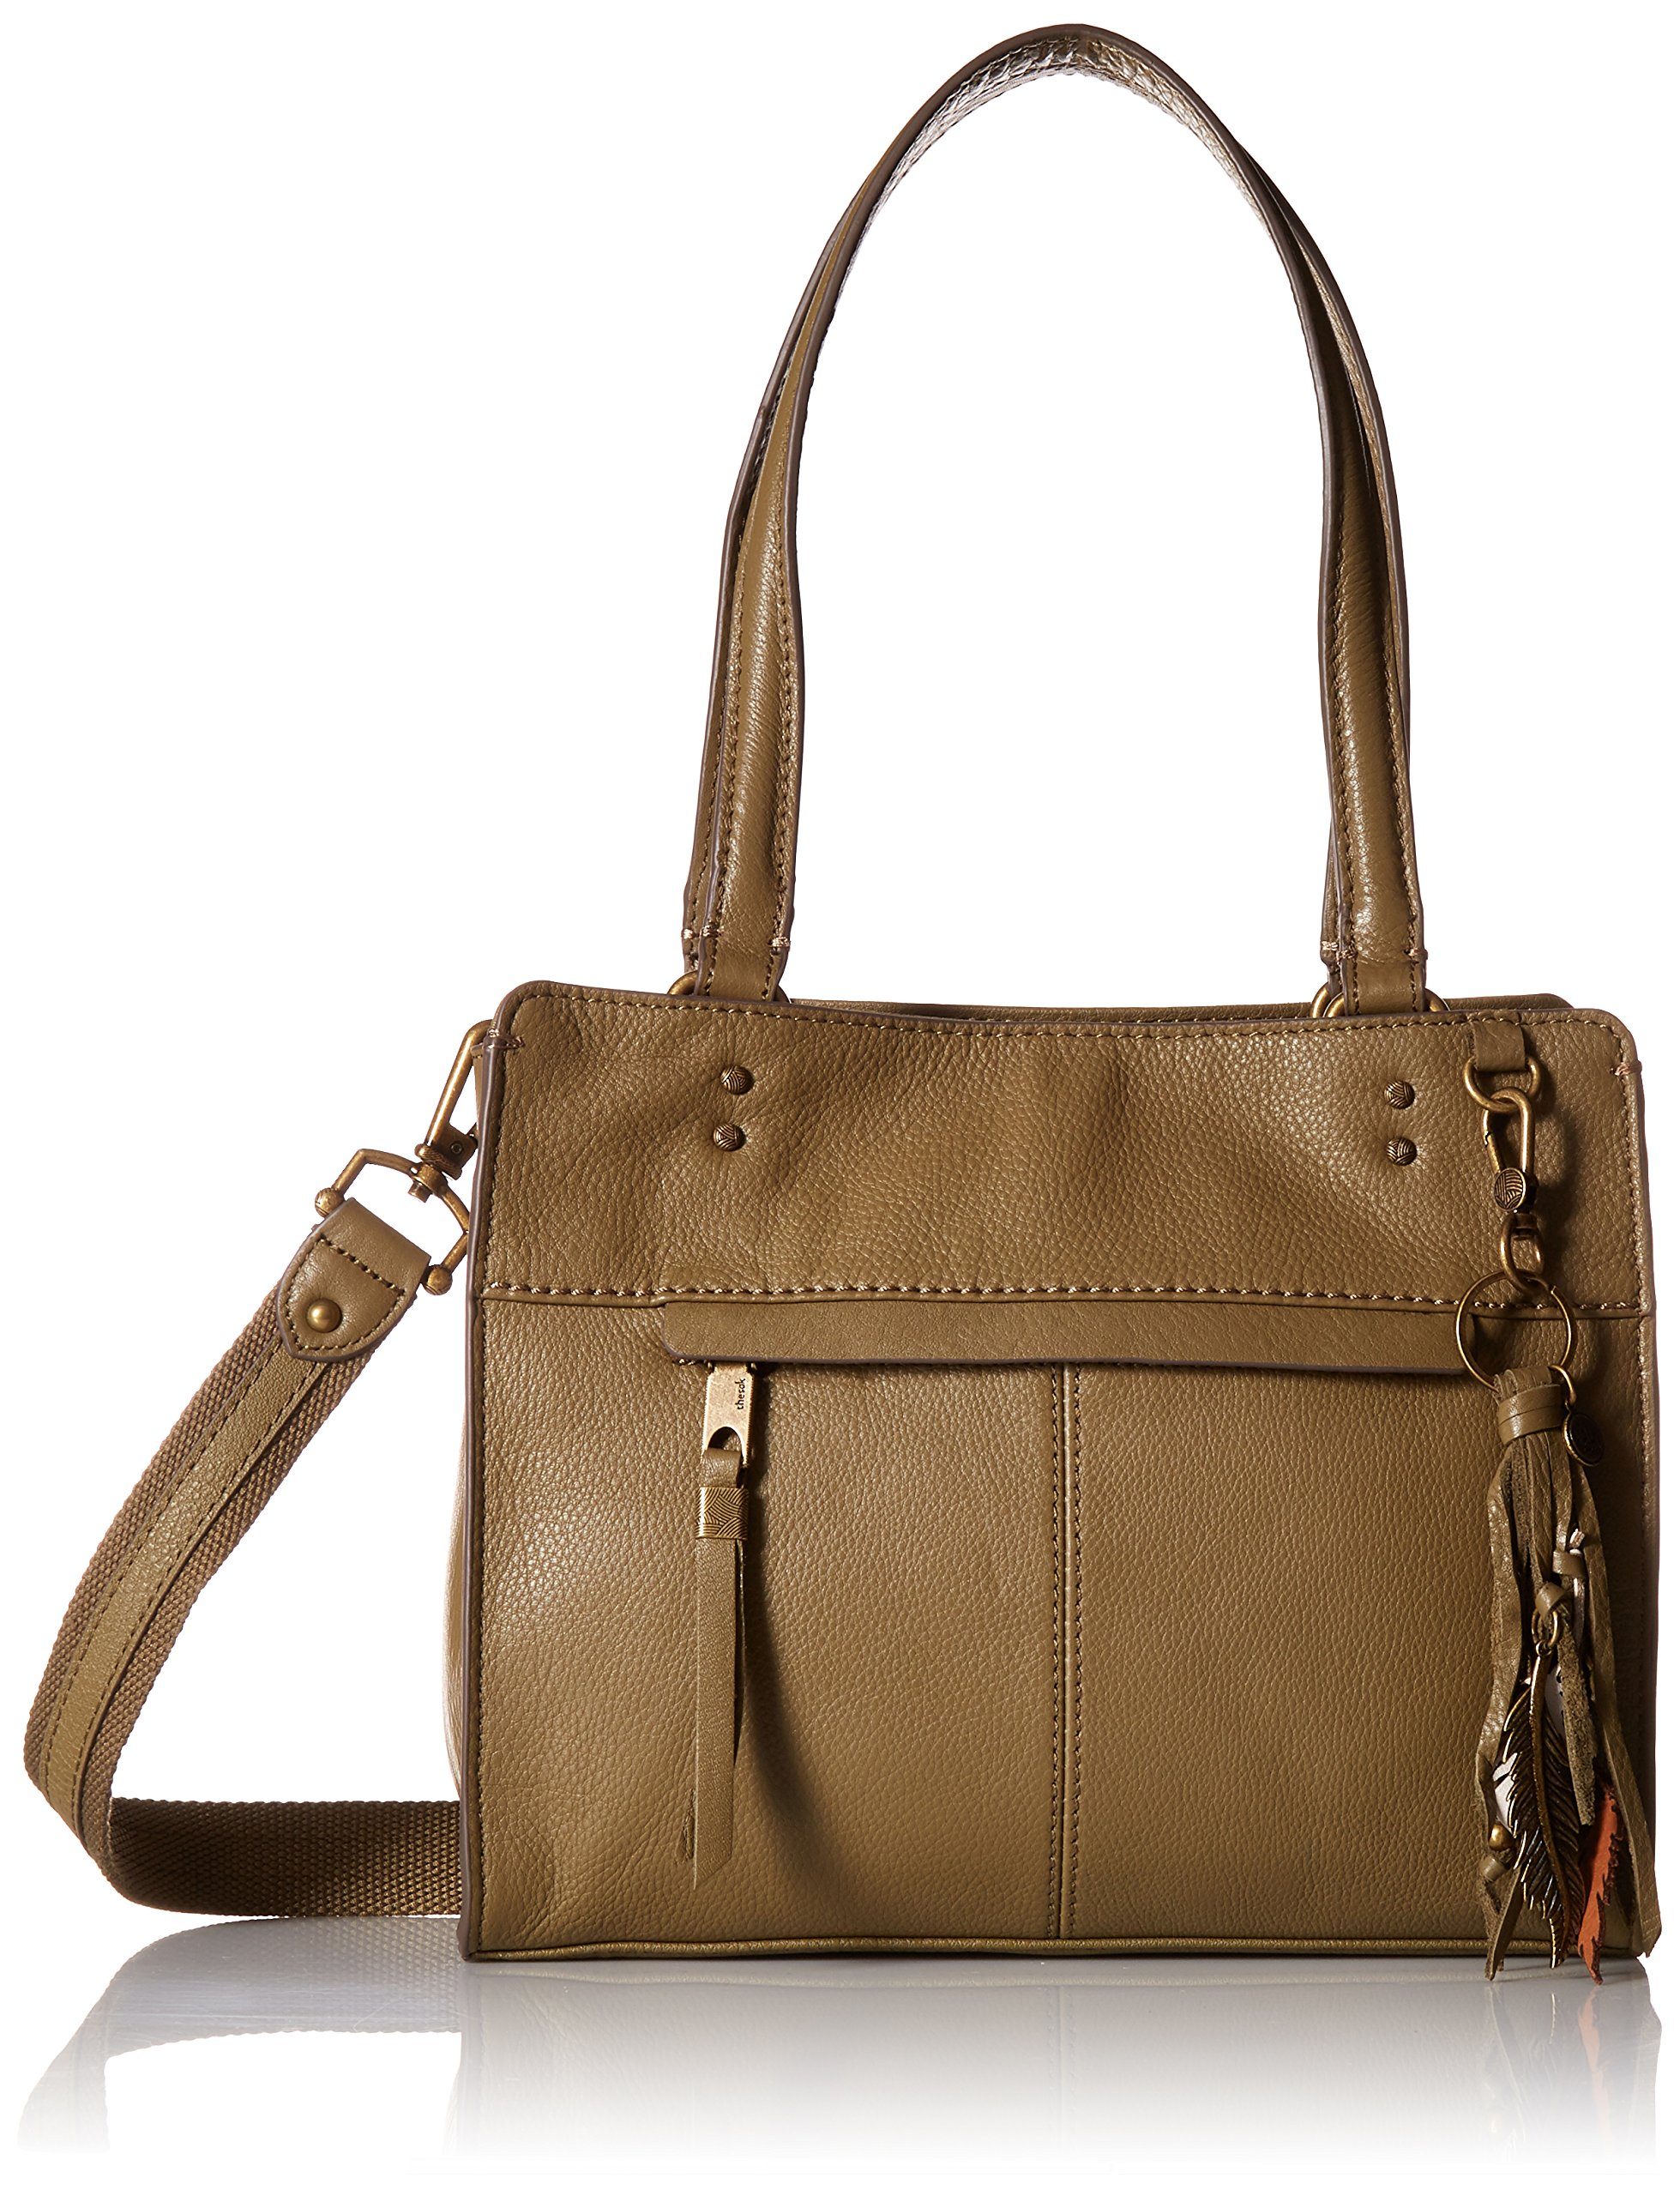 The Sak Women's Alameda Satchel